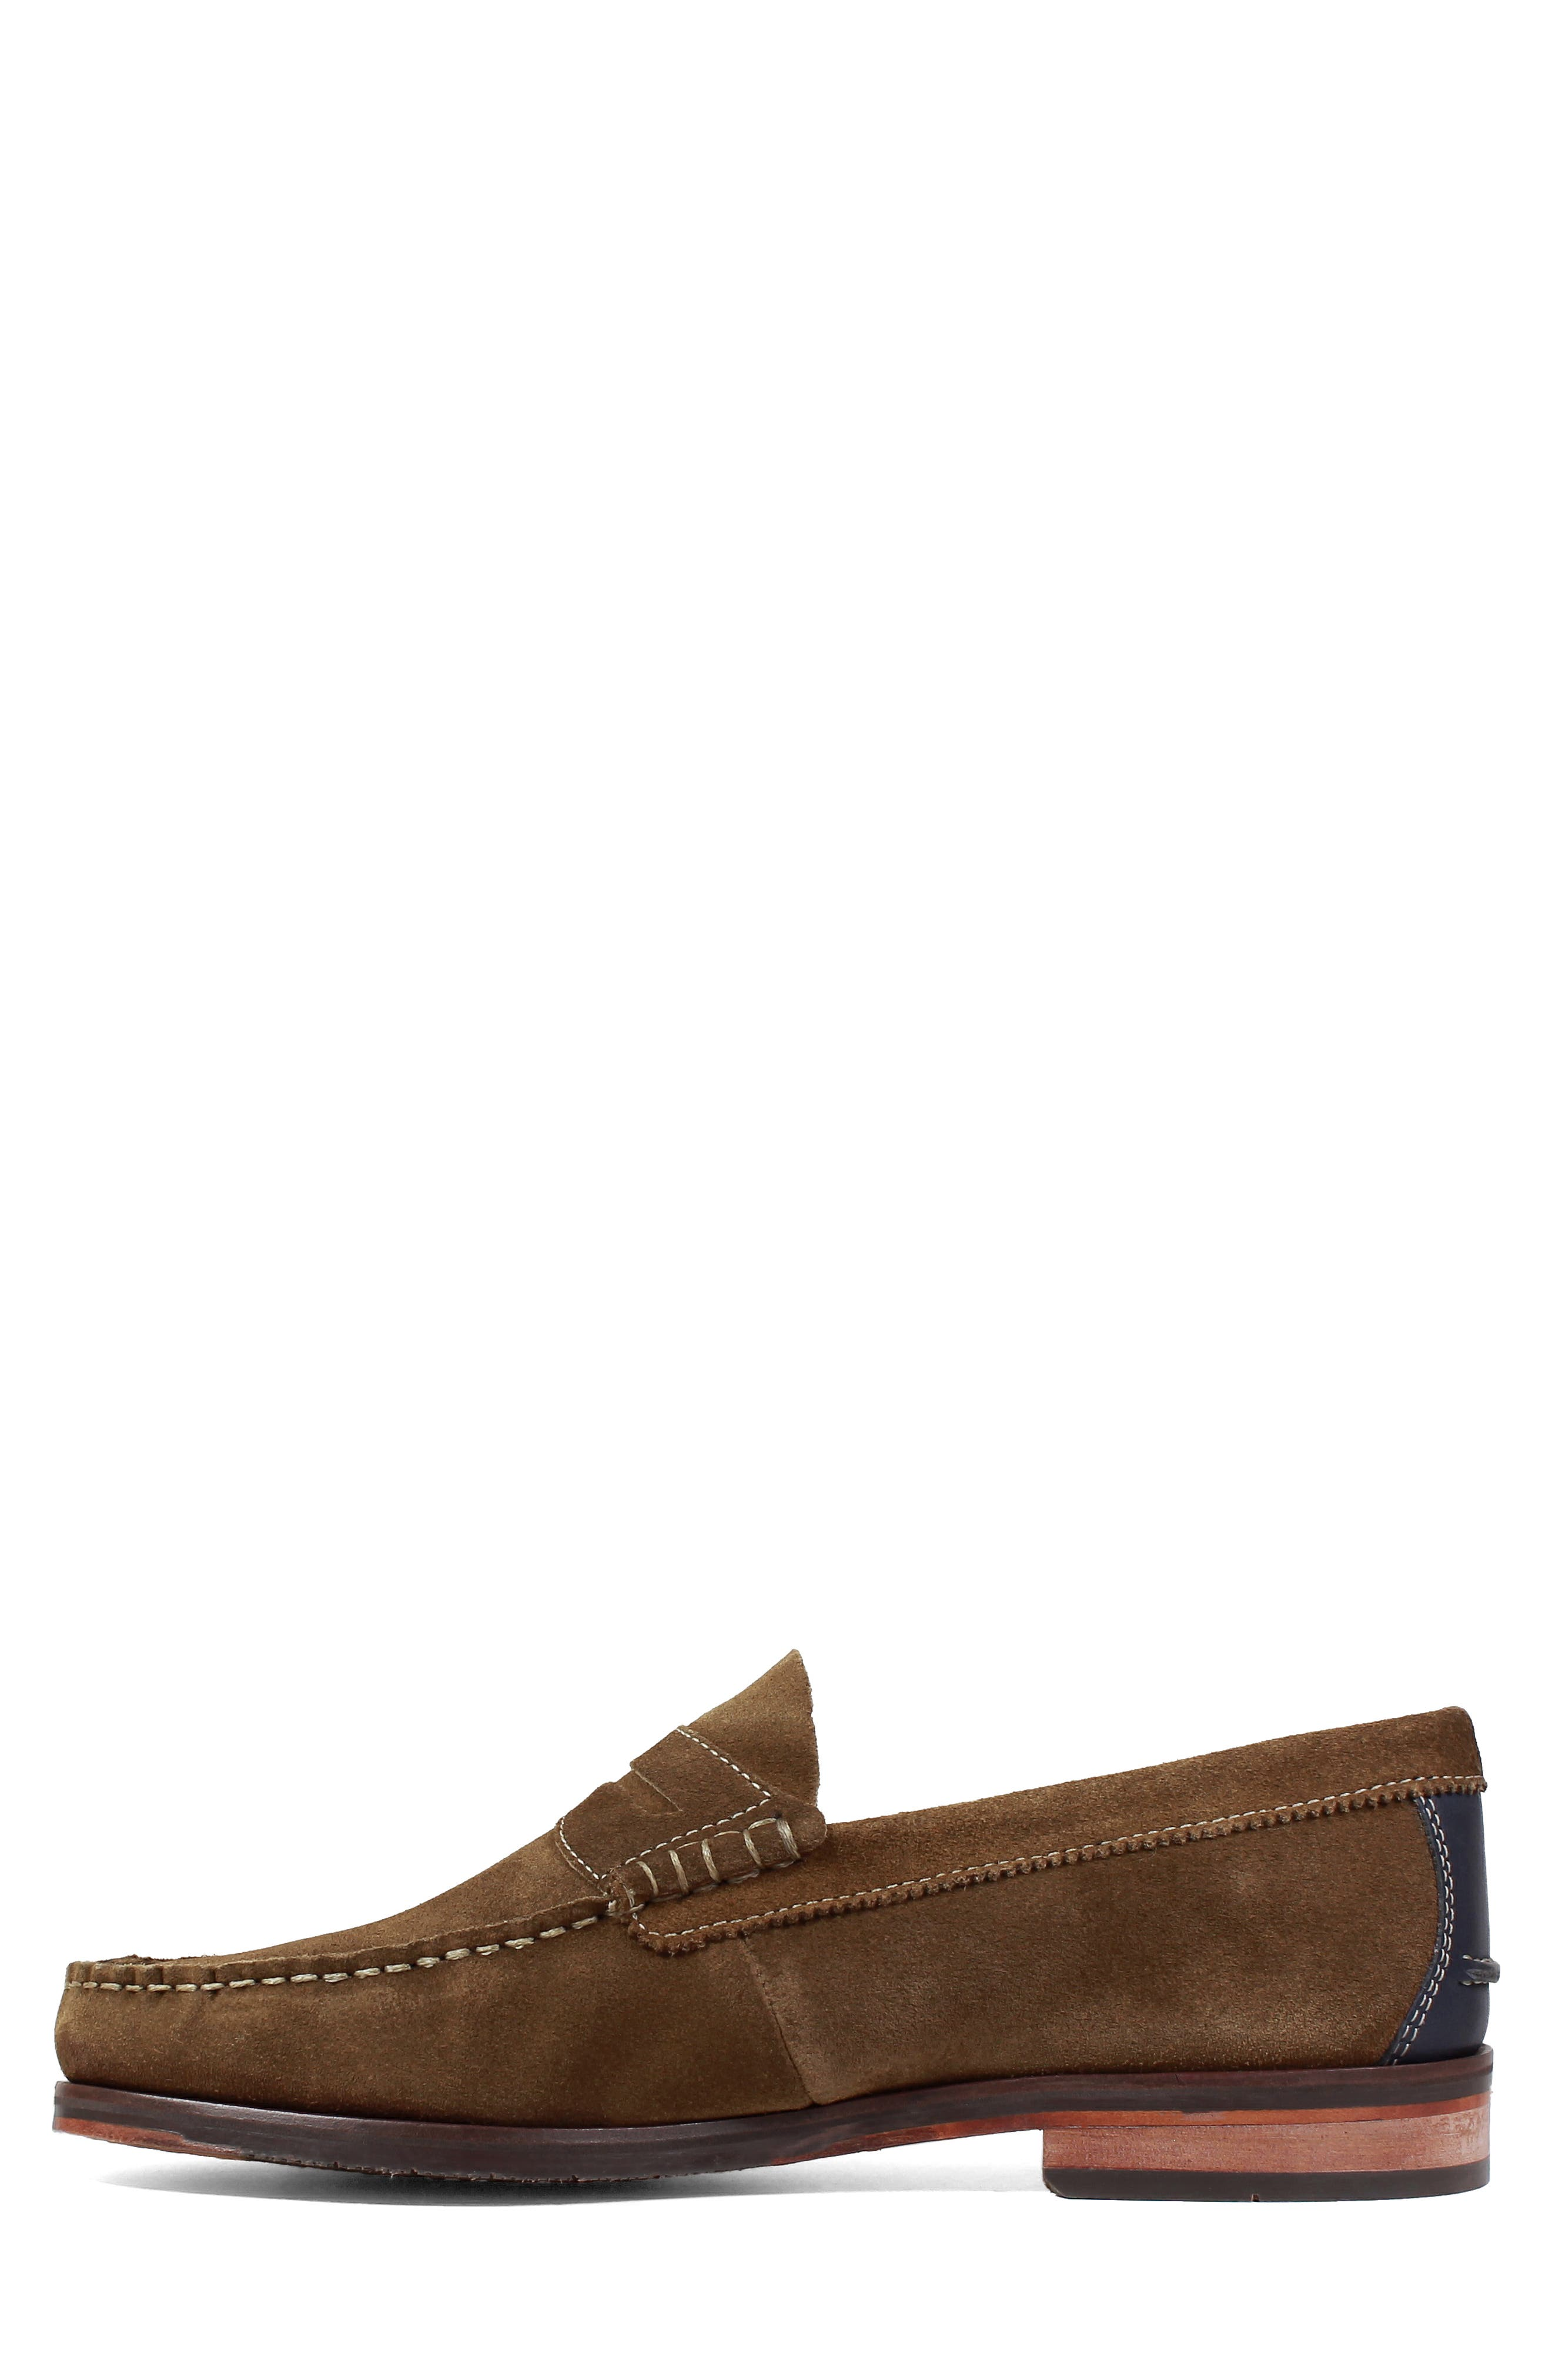 Heads-Up Penny Loafer,                             Alternate thumbnail 8, color,                             SNUFF SUEDE